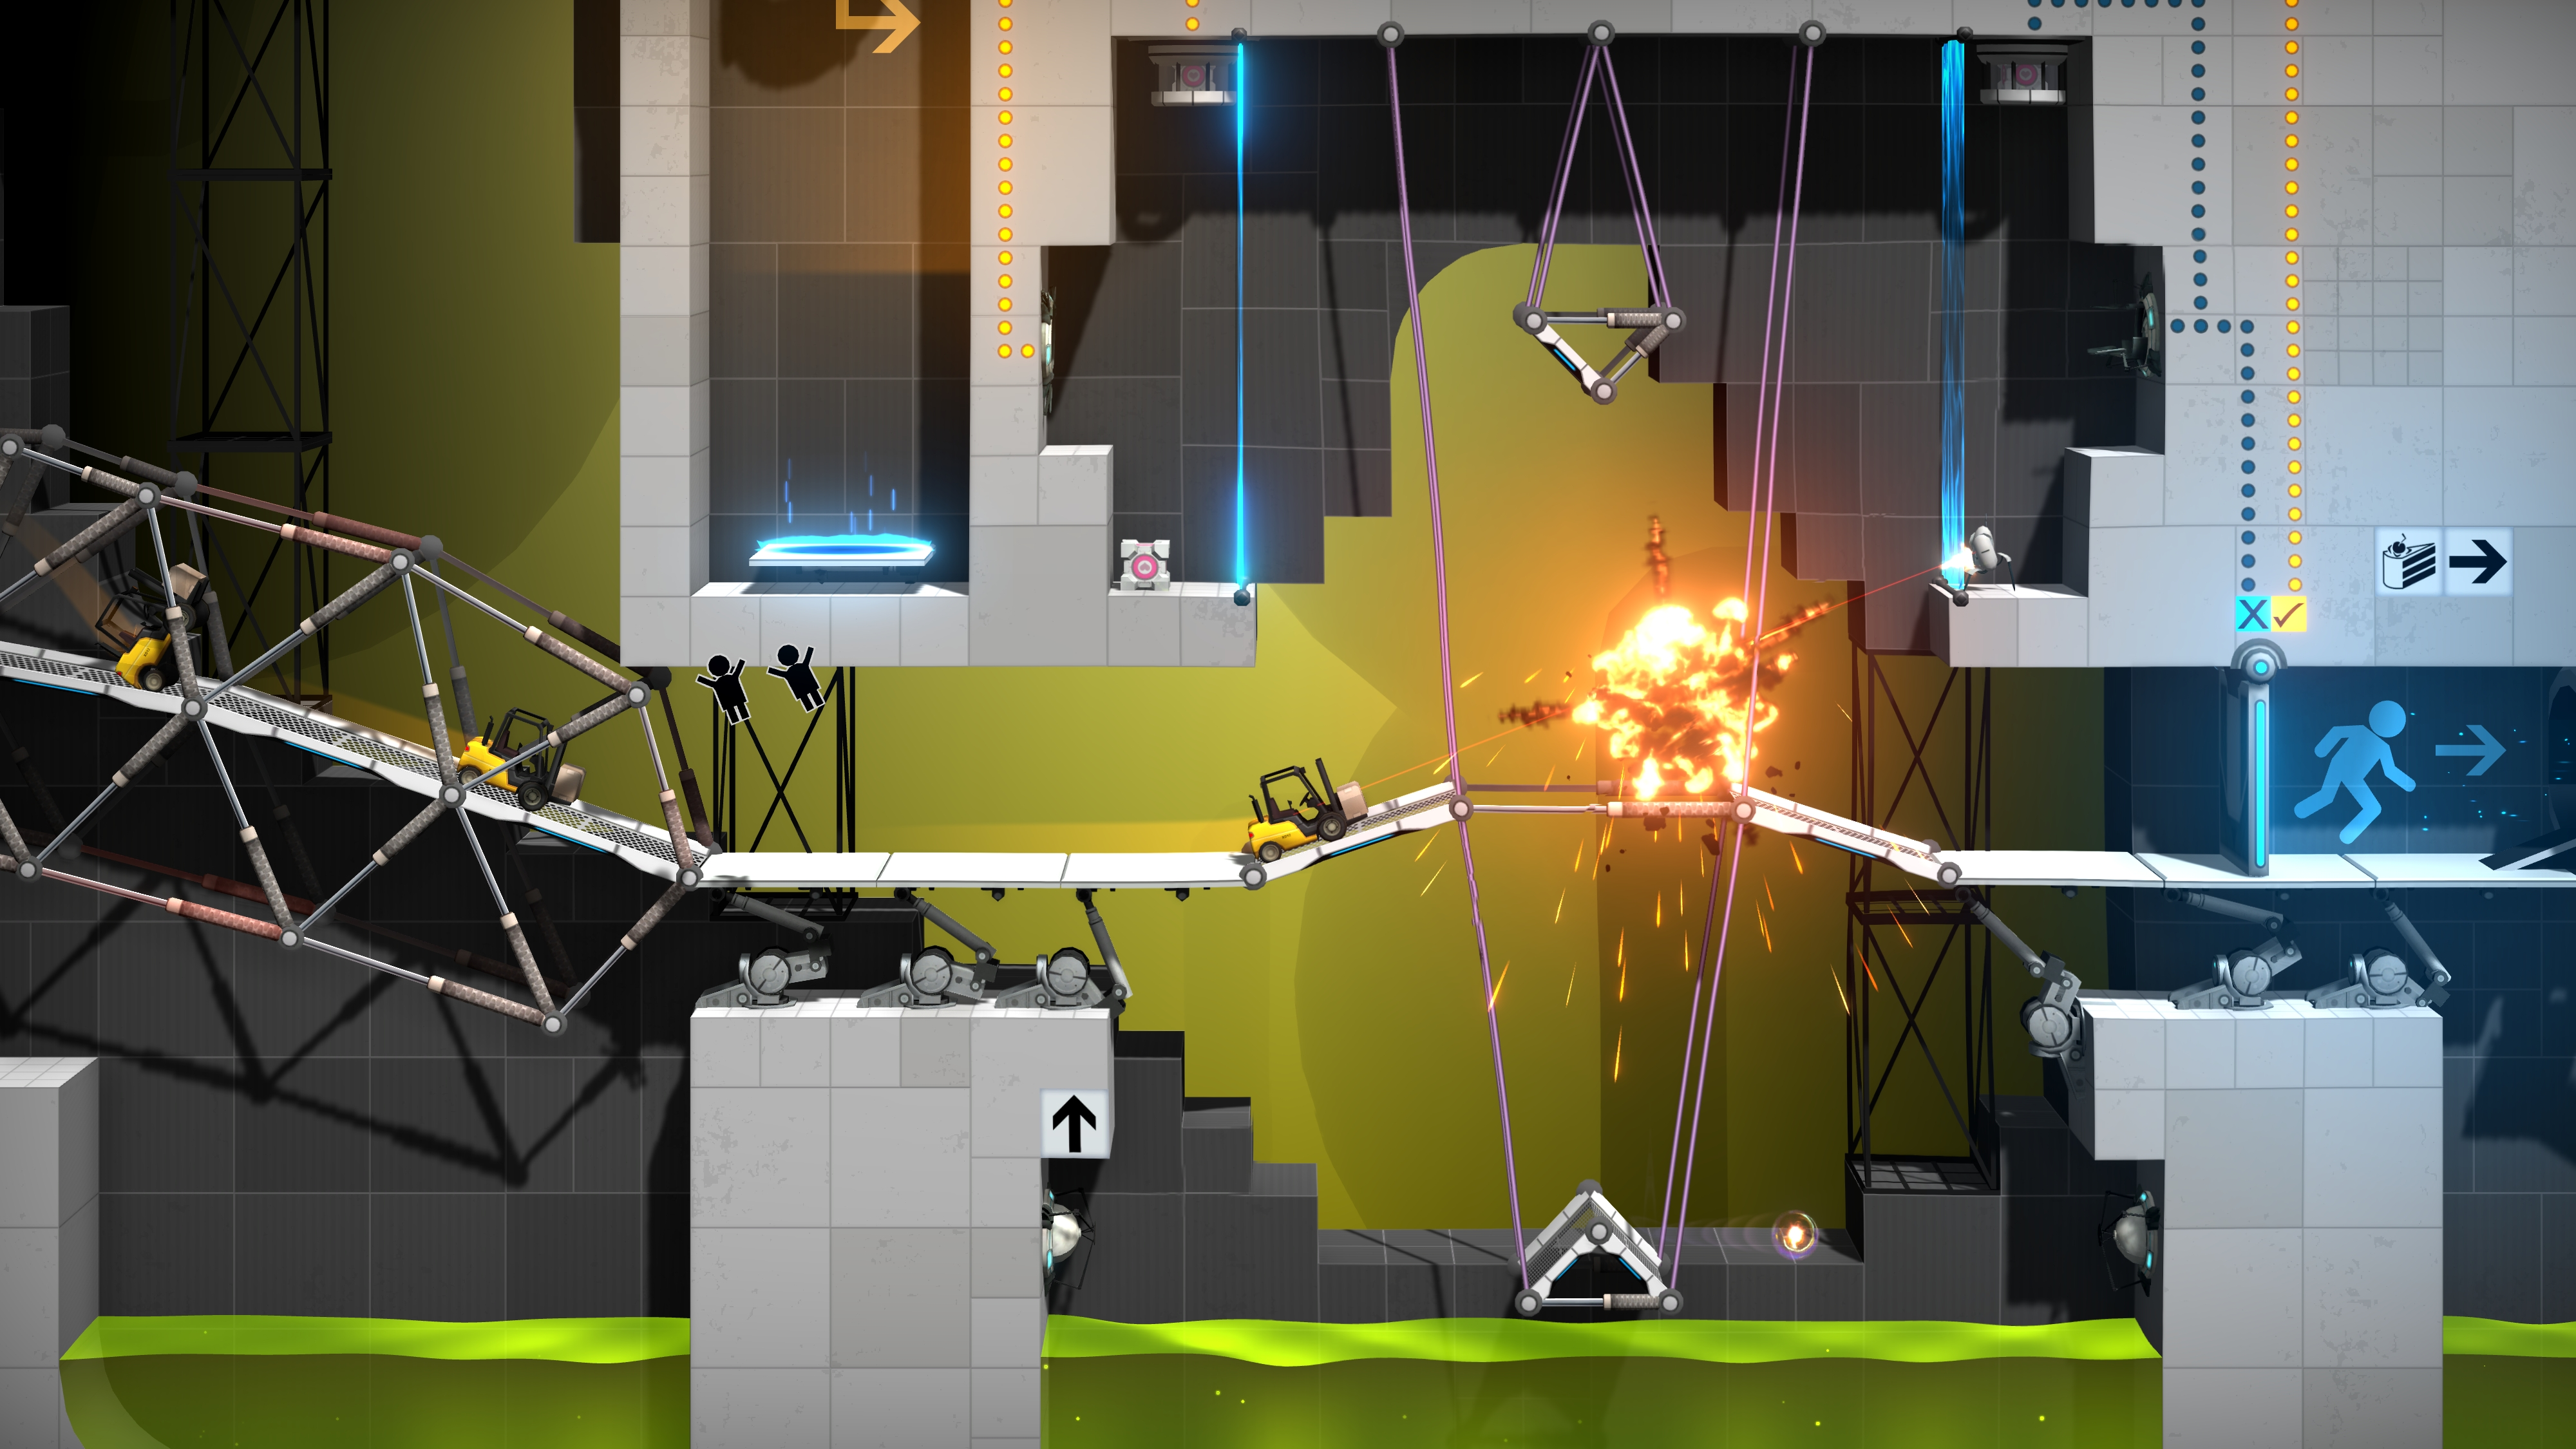 Valve and Headup Games team up for Bridge Constructor Portal